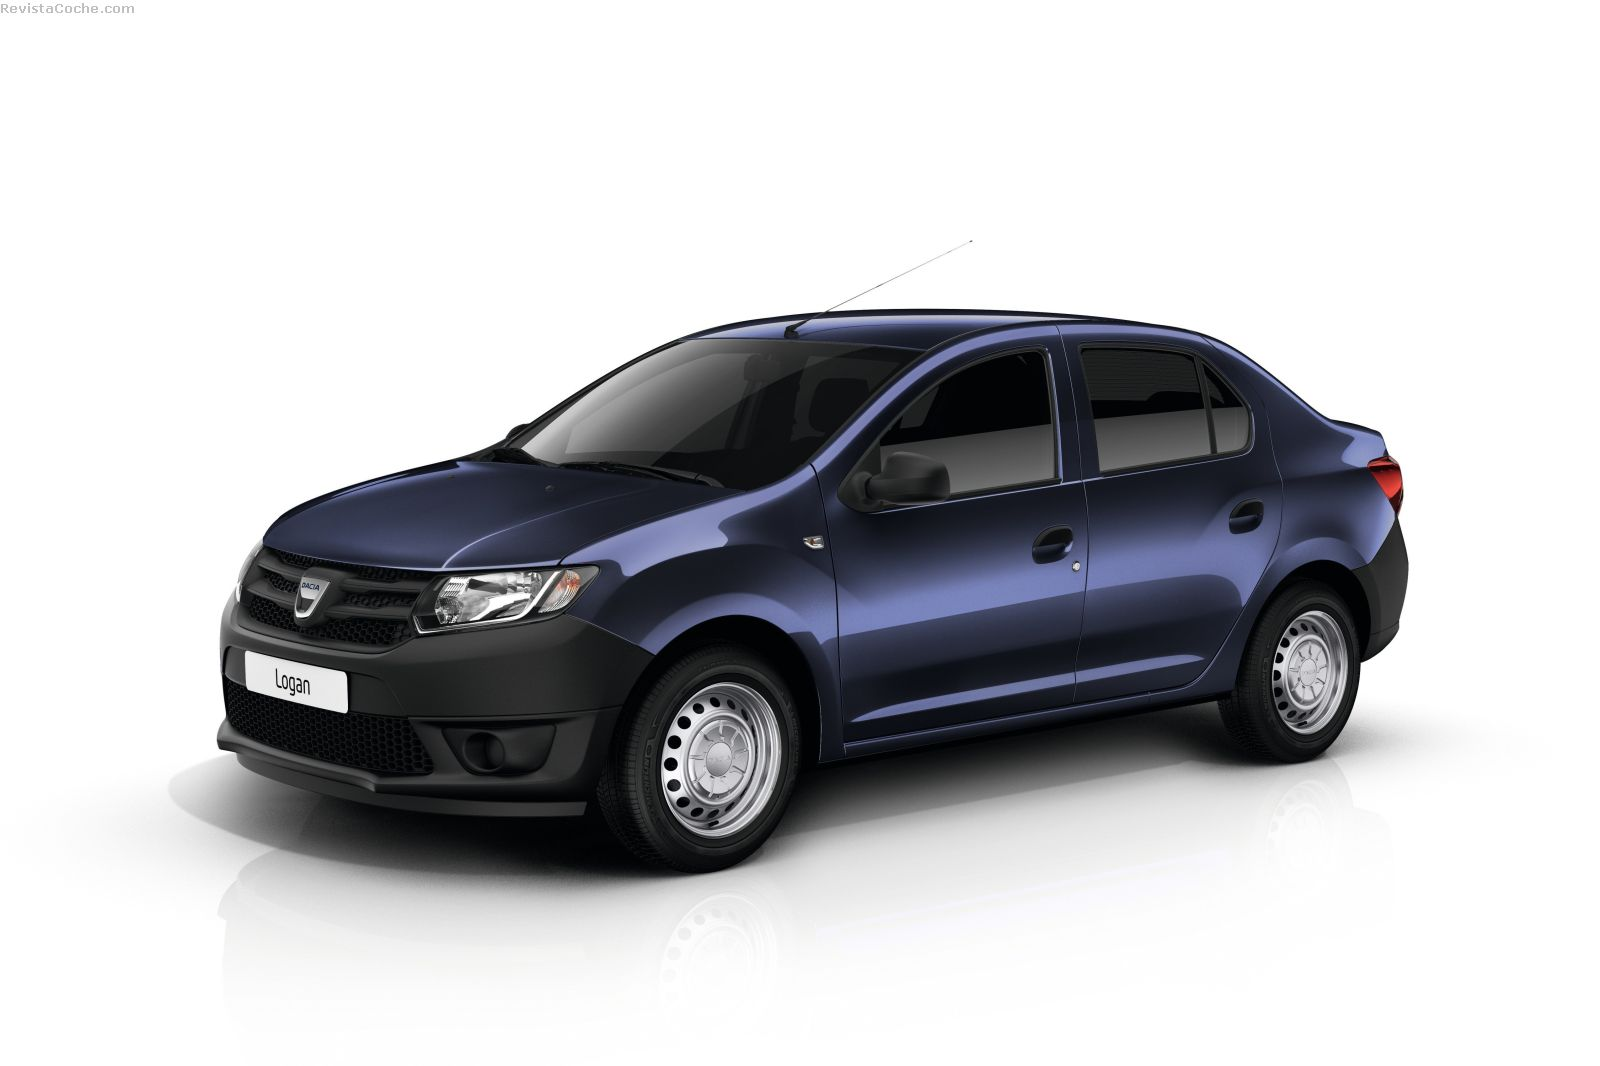 revista coche dacia presenta en par s sus nuevos dacia logan sandero y sandero stepway. Black Bedroom Furniture Sets. Home Design Ideas